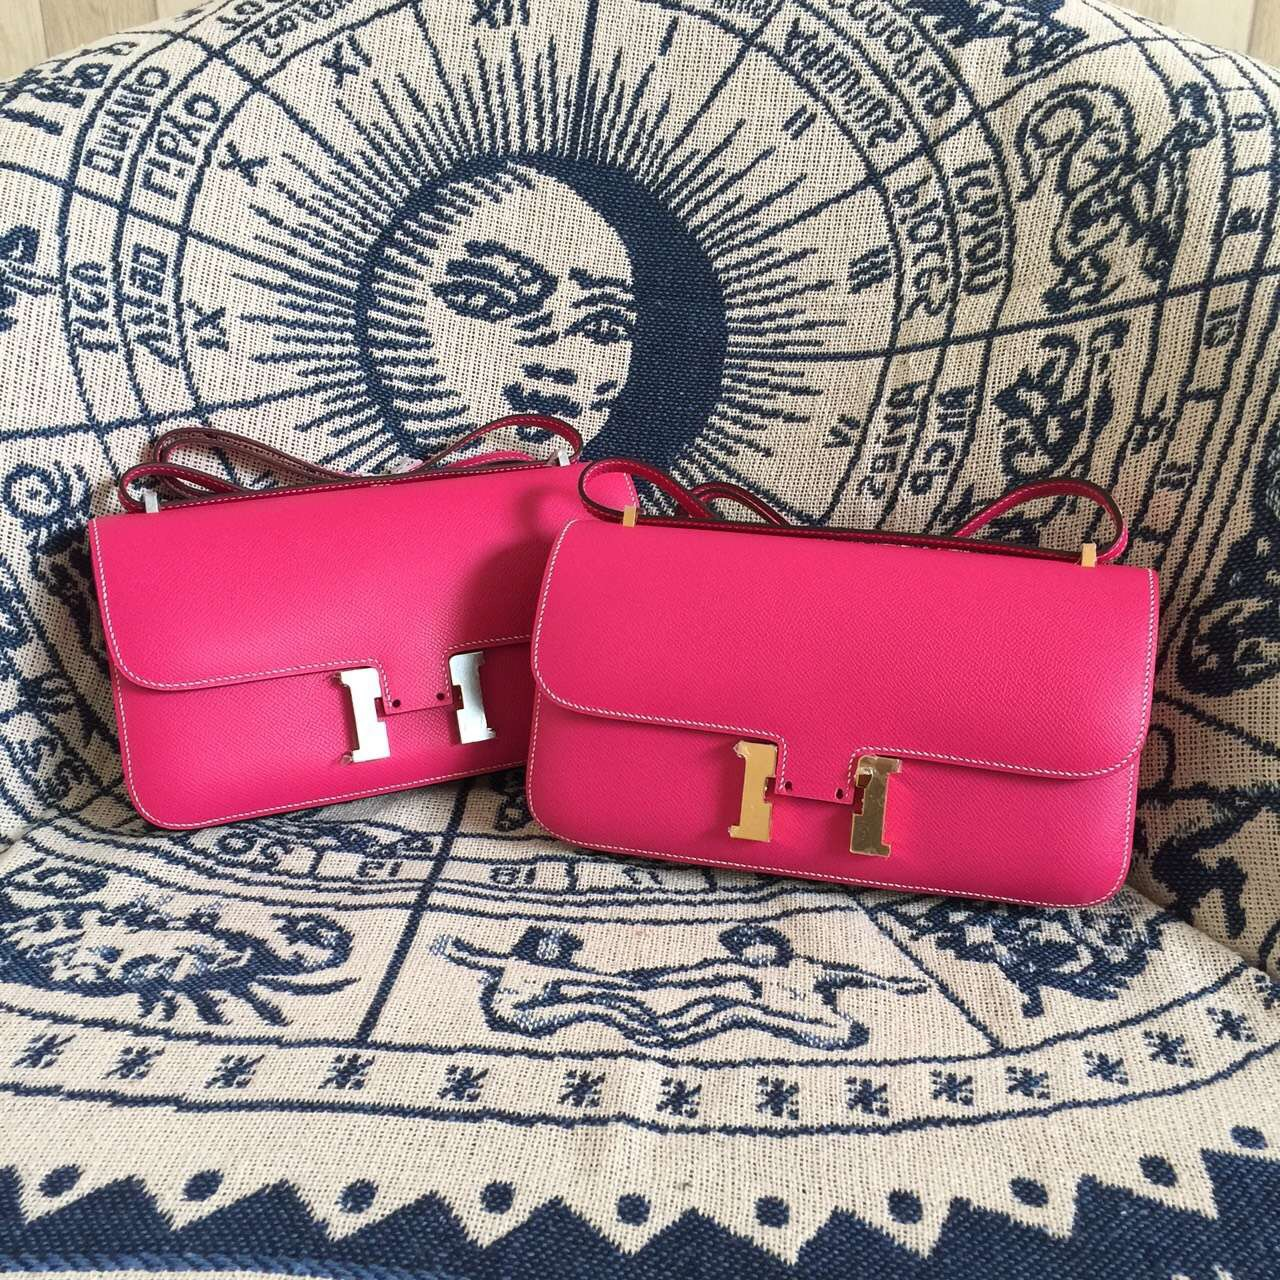 2015 New Fashion Hermes E5 Candy Pink Epsom Leather Constance Bag 26CM